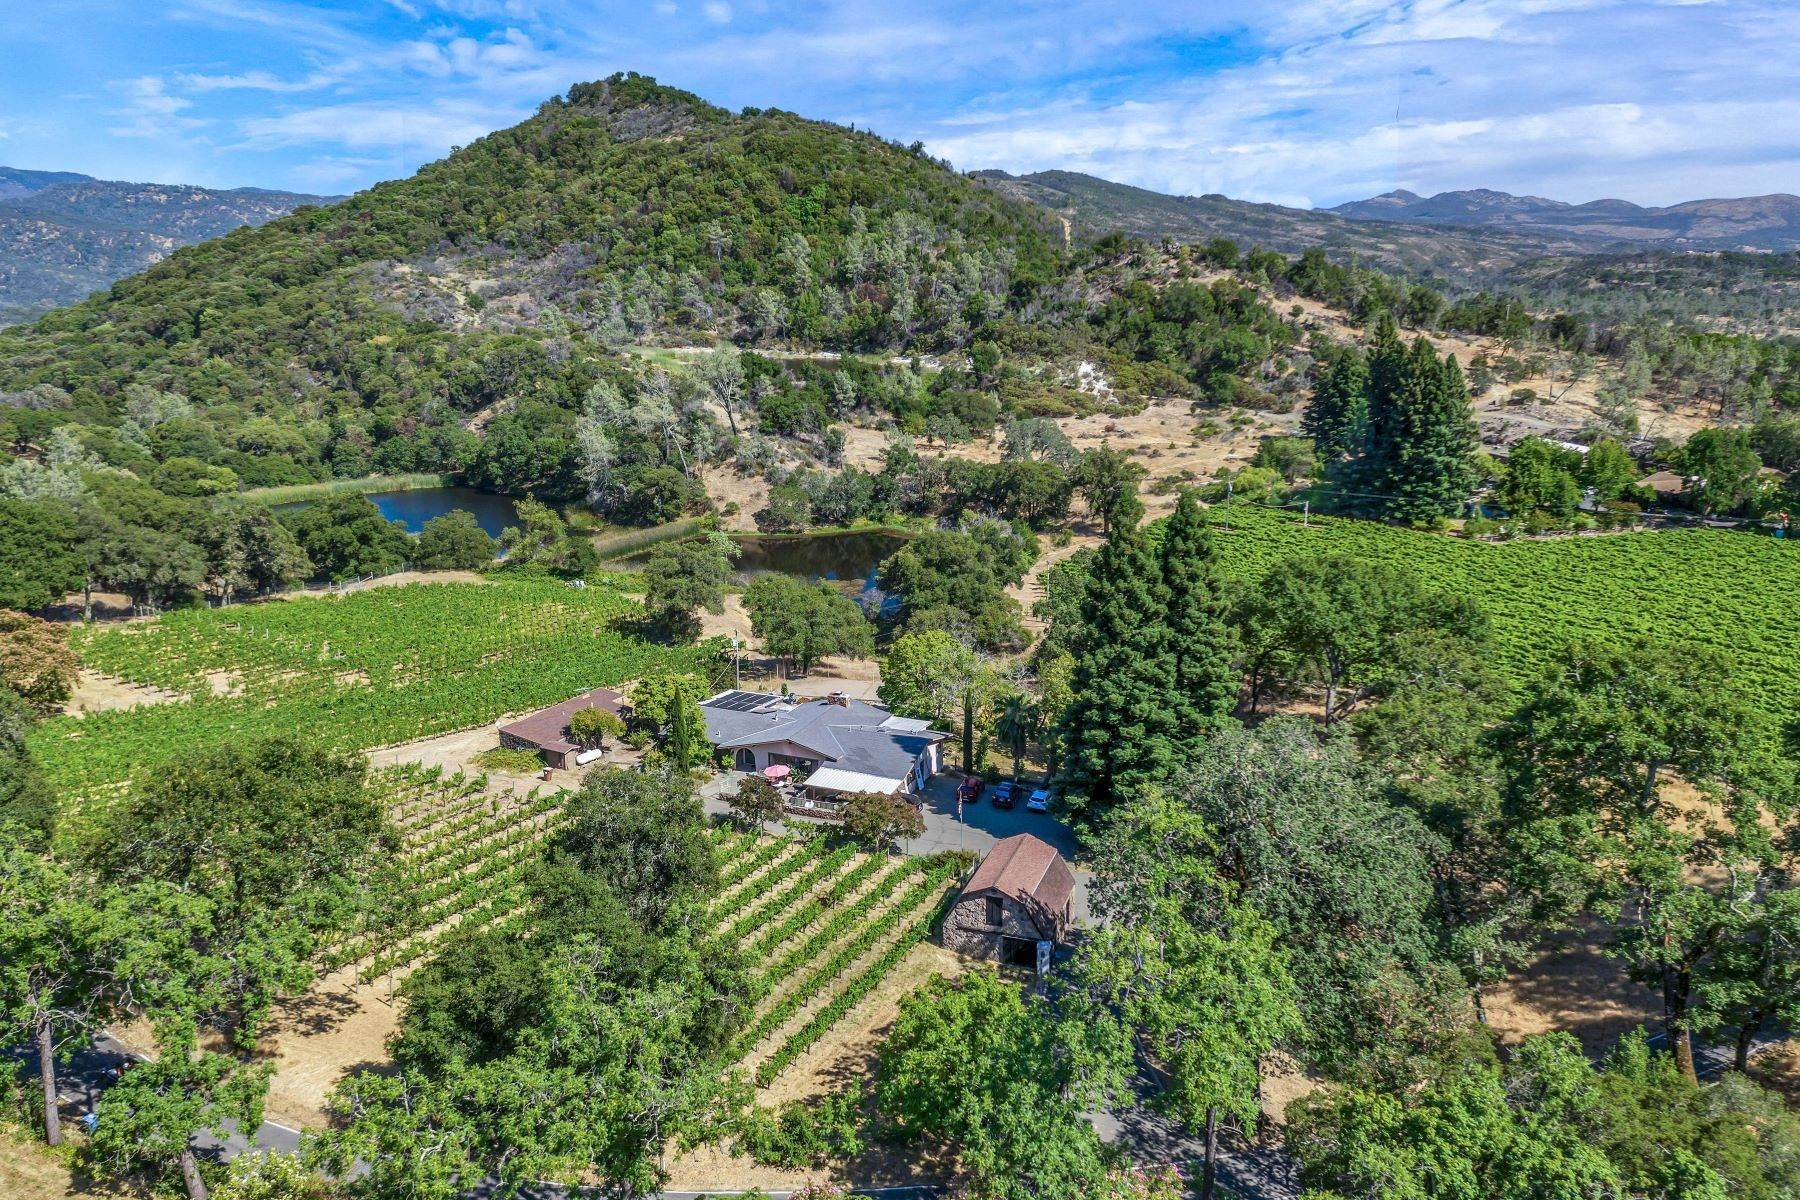 Single Family Homes for Sale at Ultra-Premium Vineyard & Country Estate 4080 Atlas Peak Road Napa, California 94558 United States